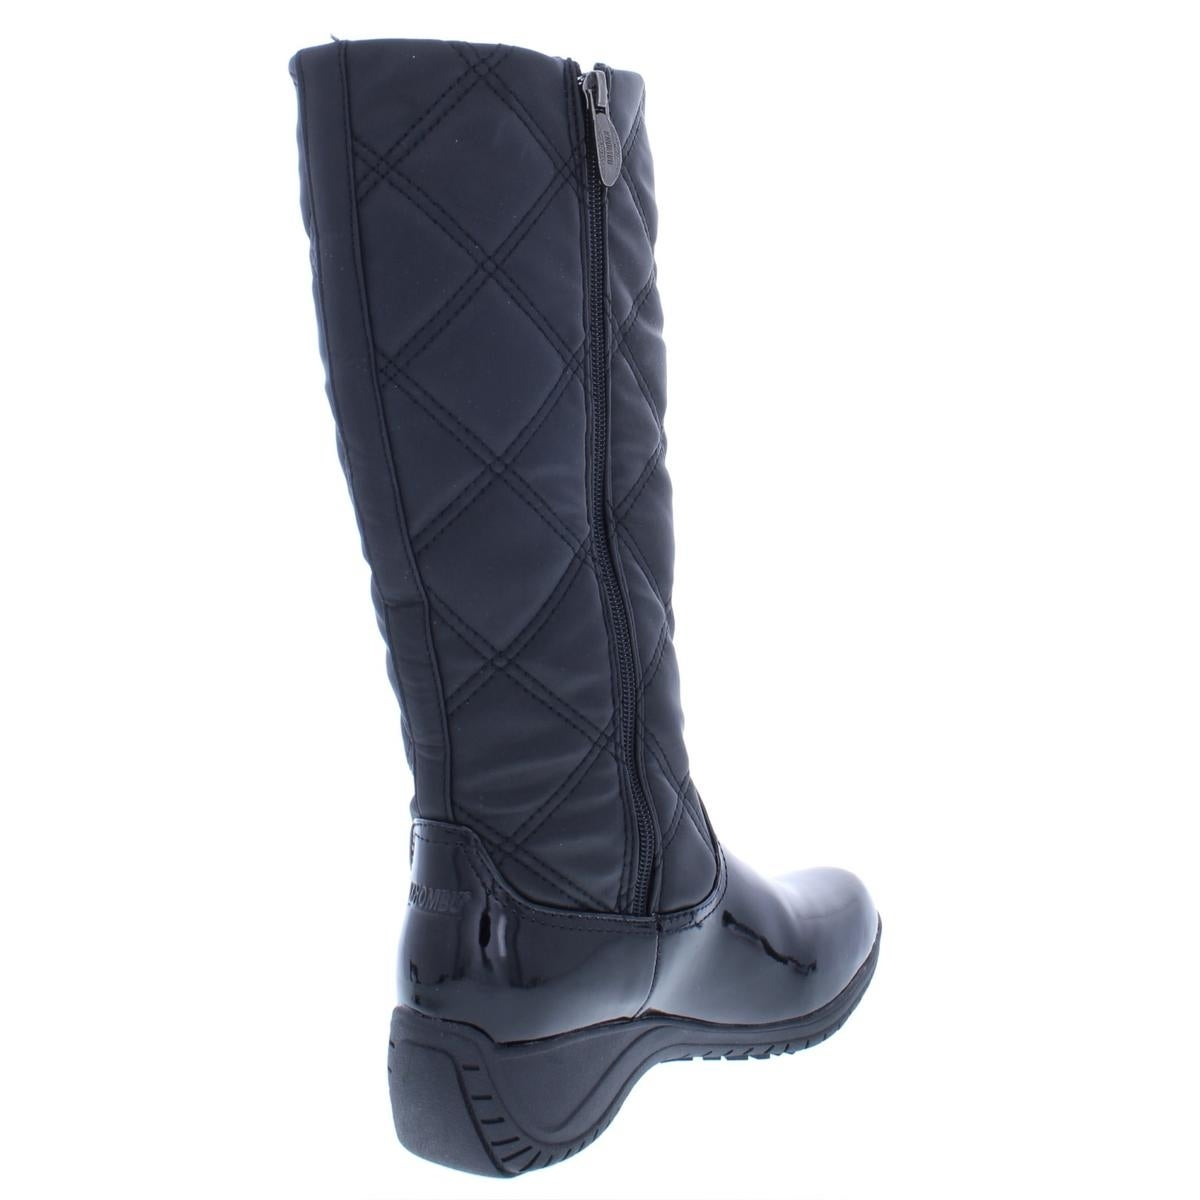 330d7cfd71862 Shop Khombu Womens Addison Wedge Boots Quilted Knee-High - Free Shipping On  Orders Over $45 - Overstock - 24208498